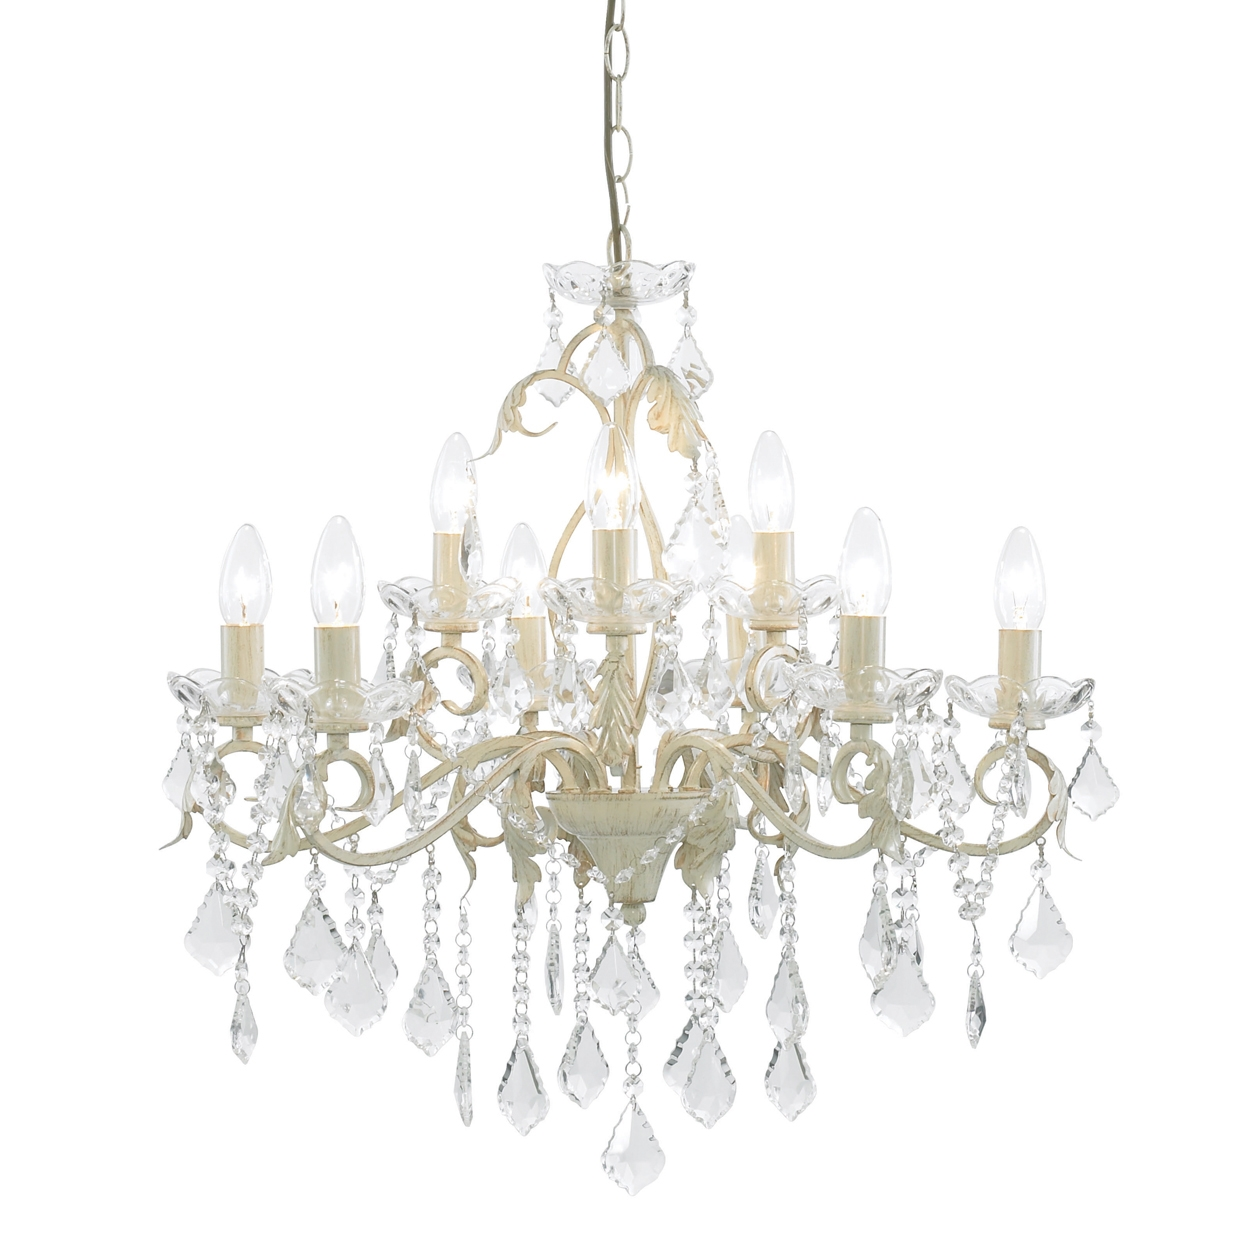 Popular Photo of Cream Crystal Chandelier